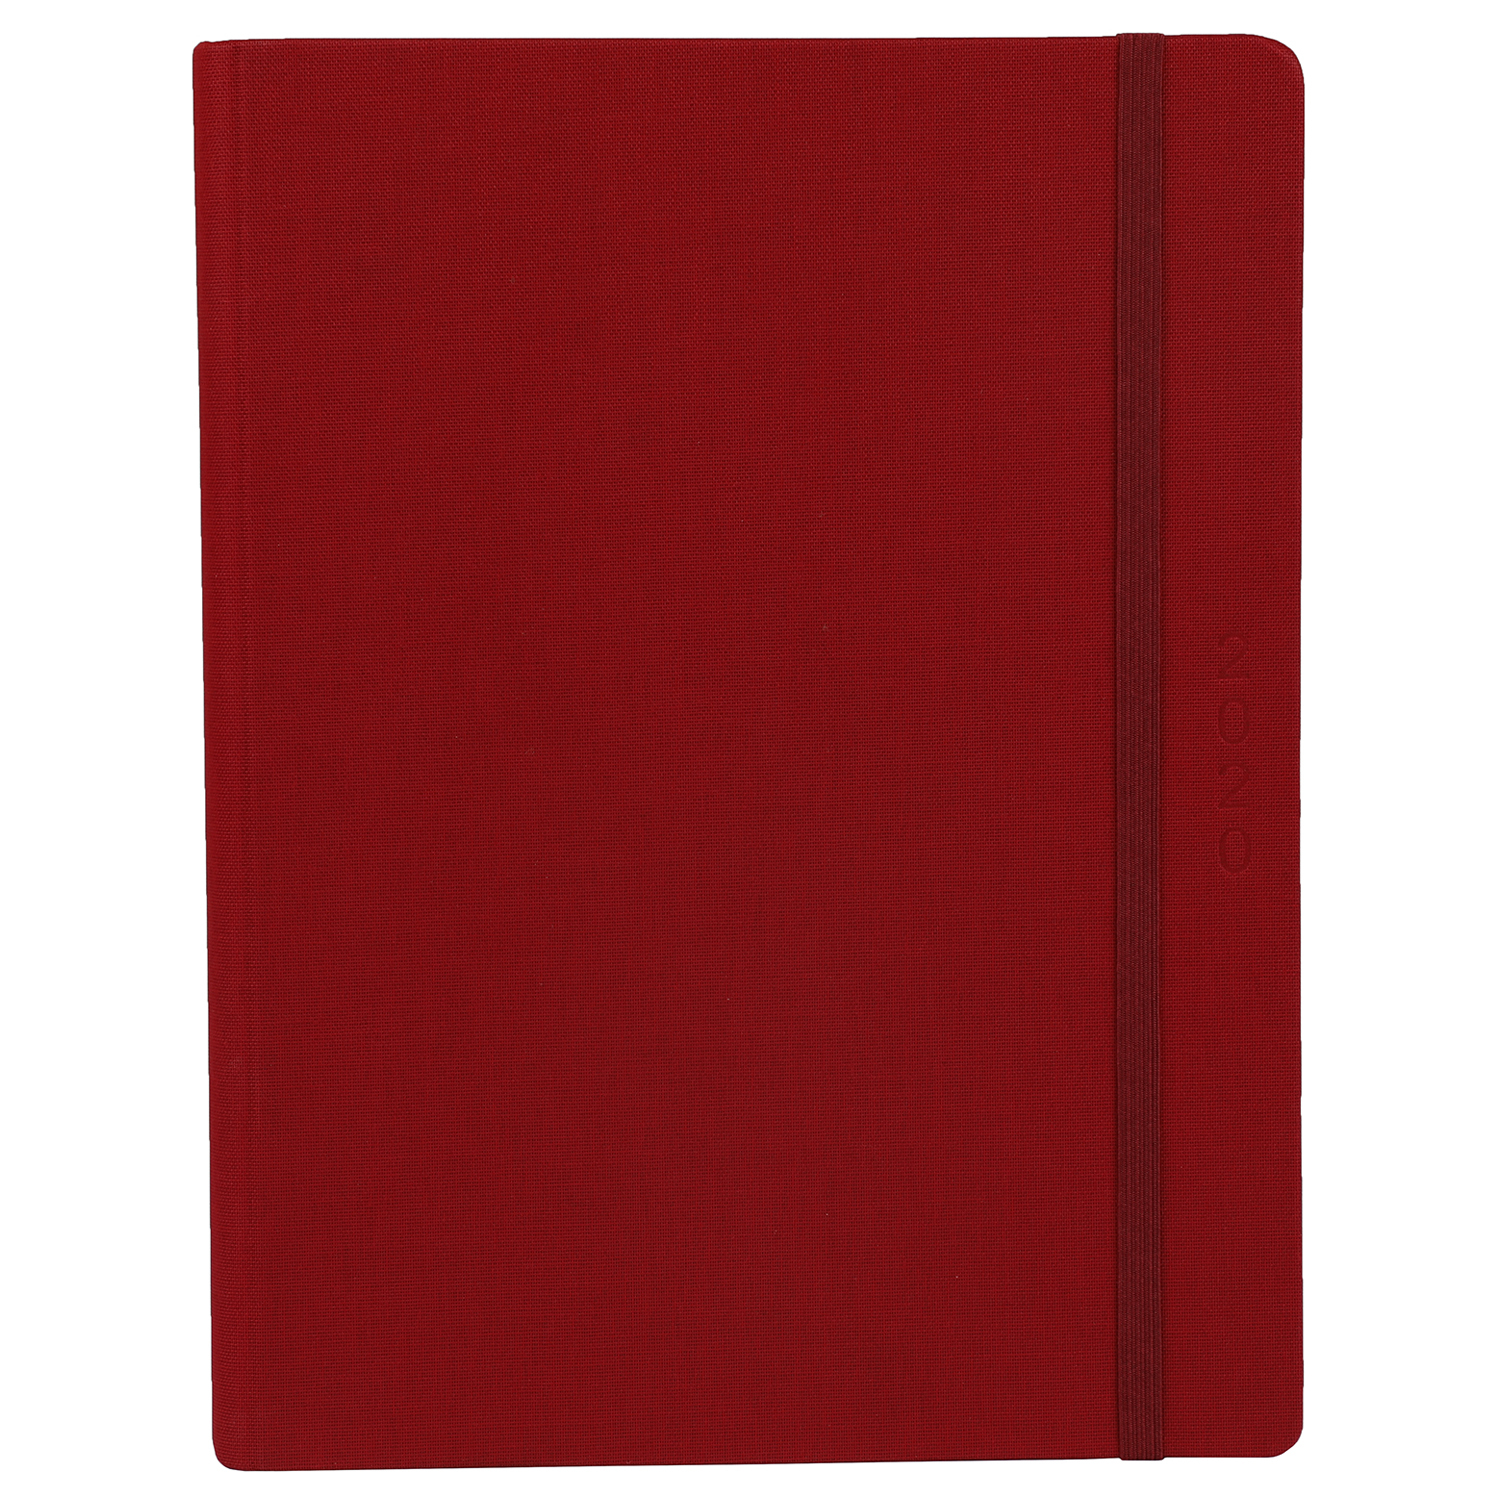 B5 Size - One Day to a Page New Year Diary with Elastic Band